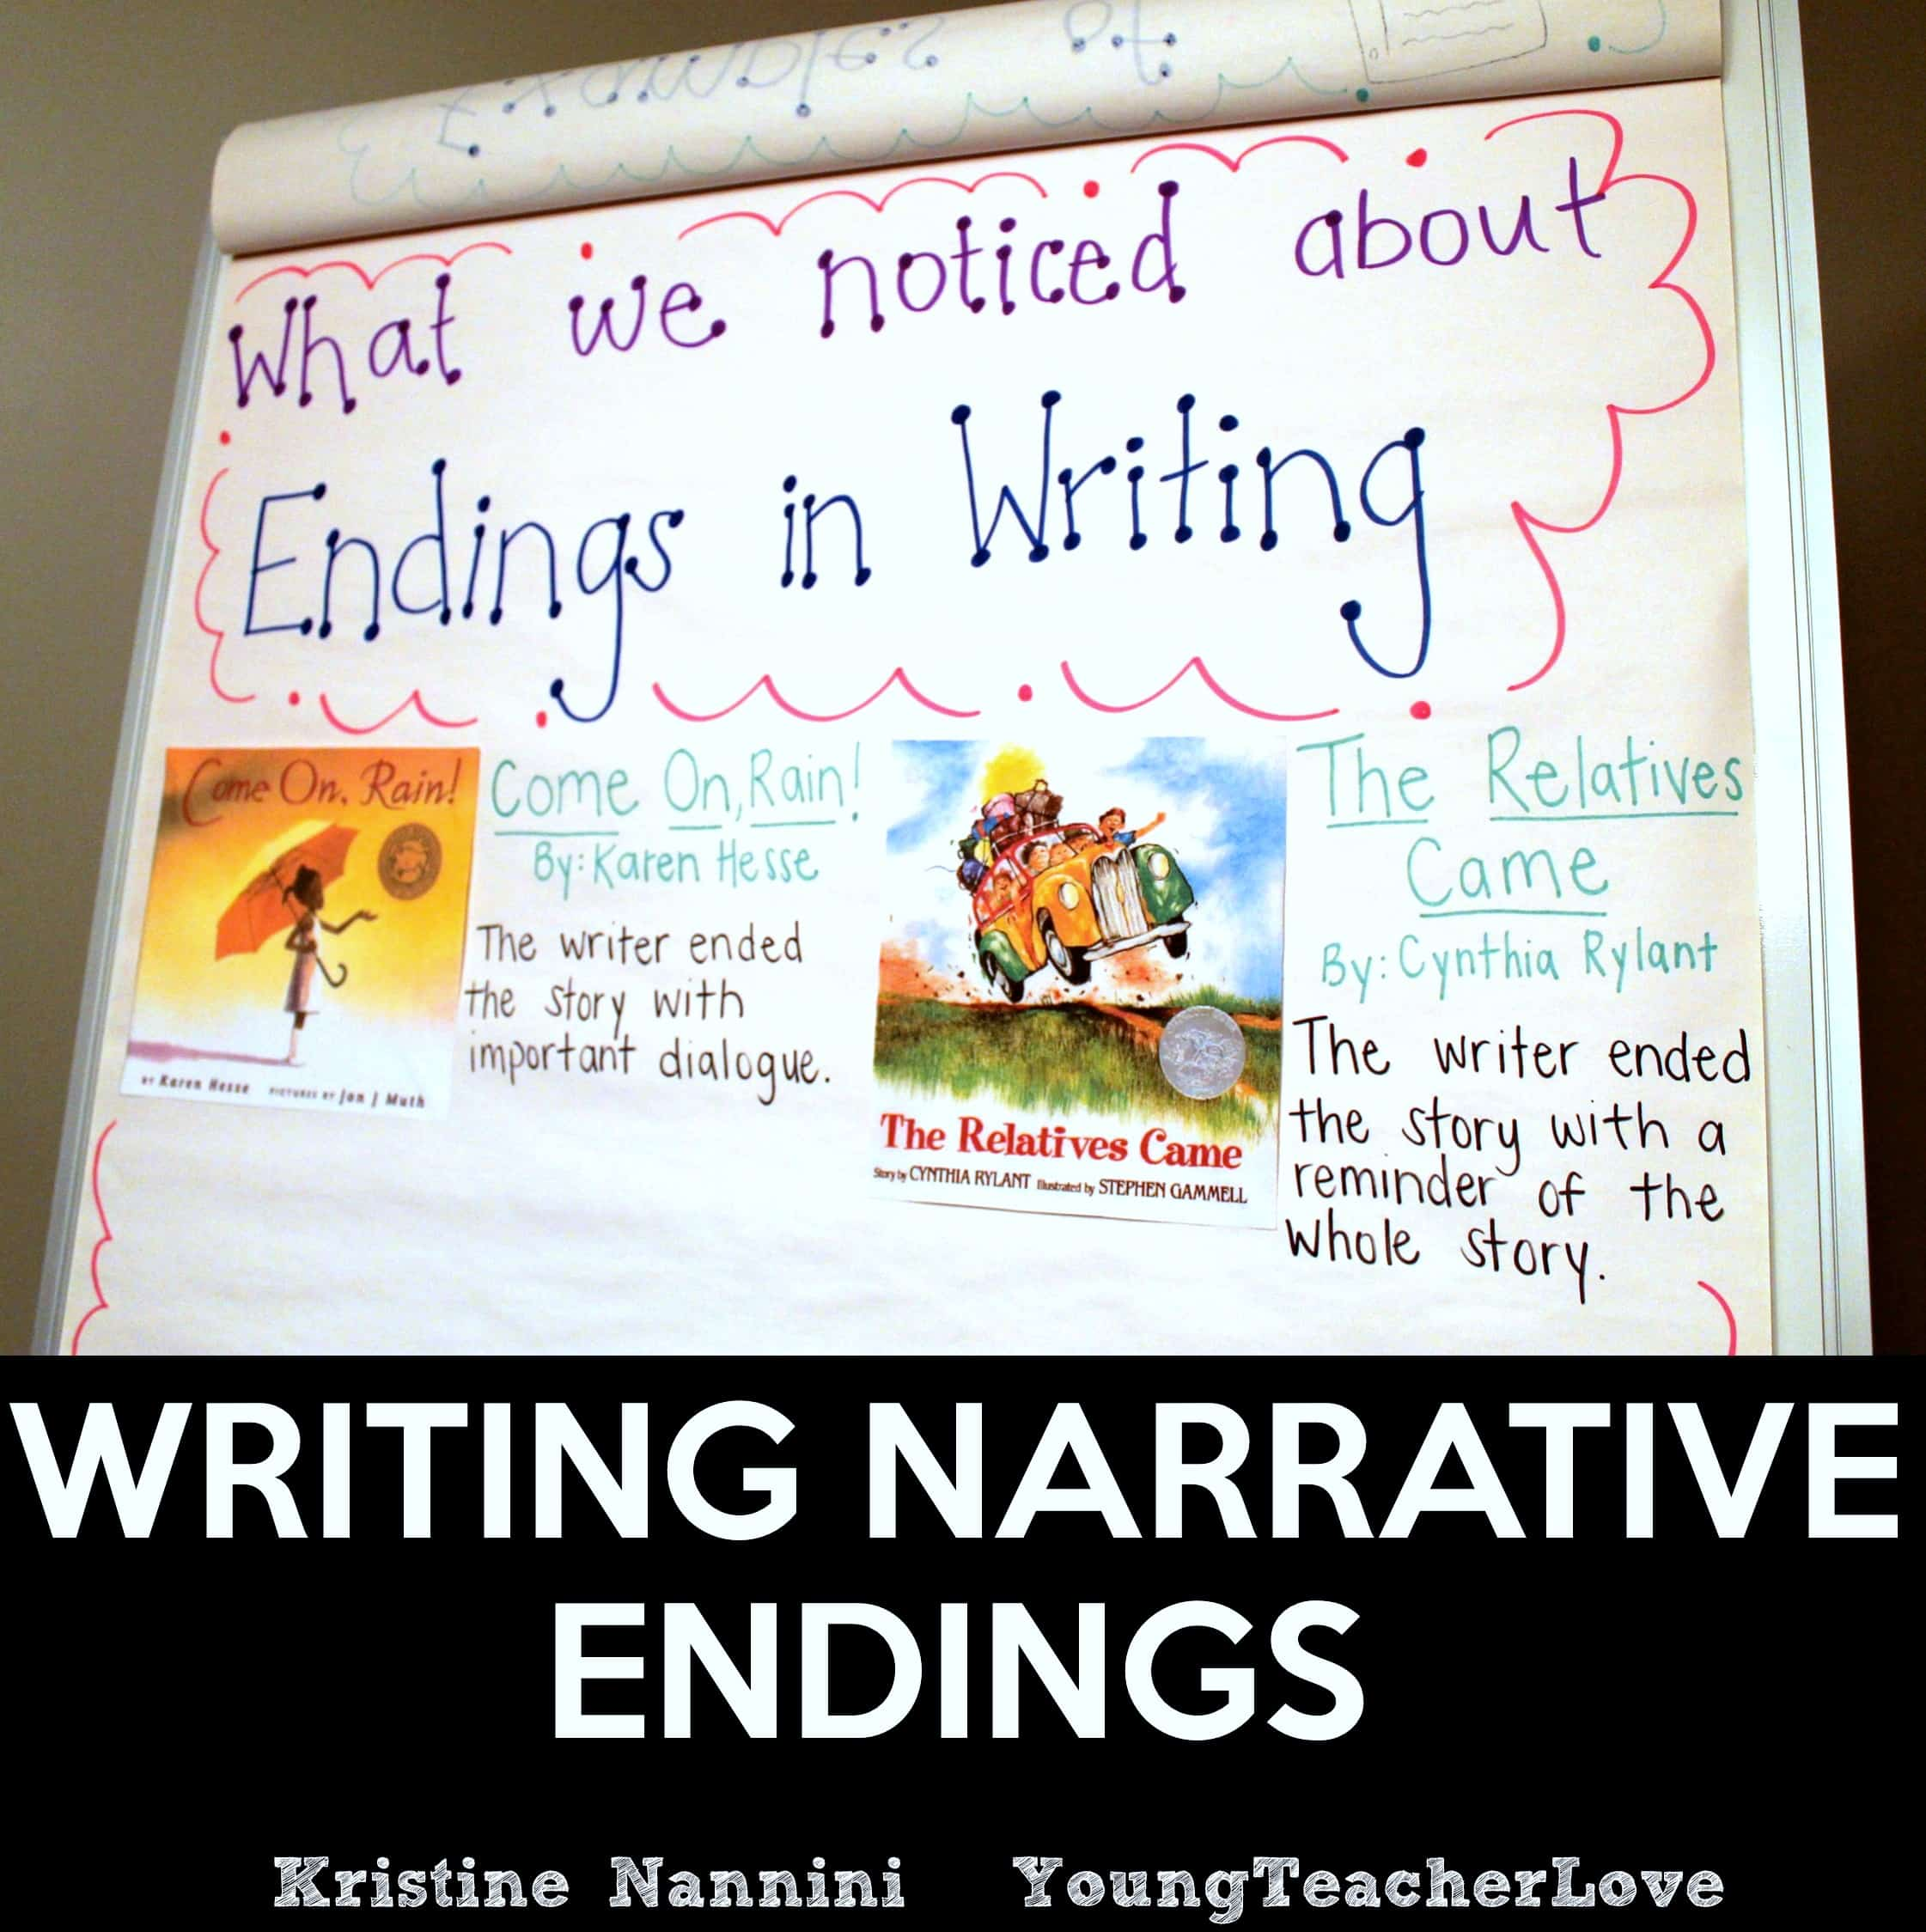 Writing Narrative Endings